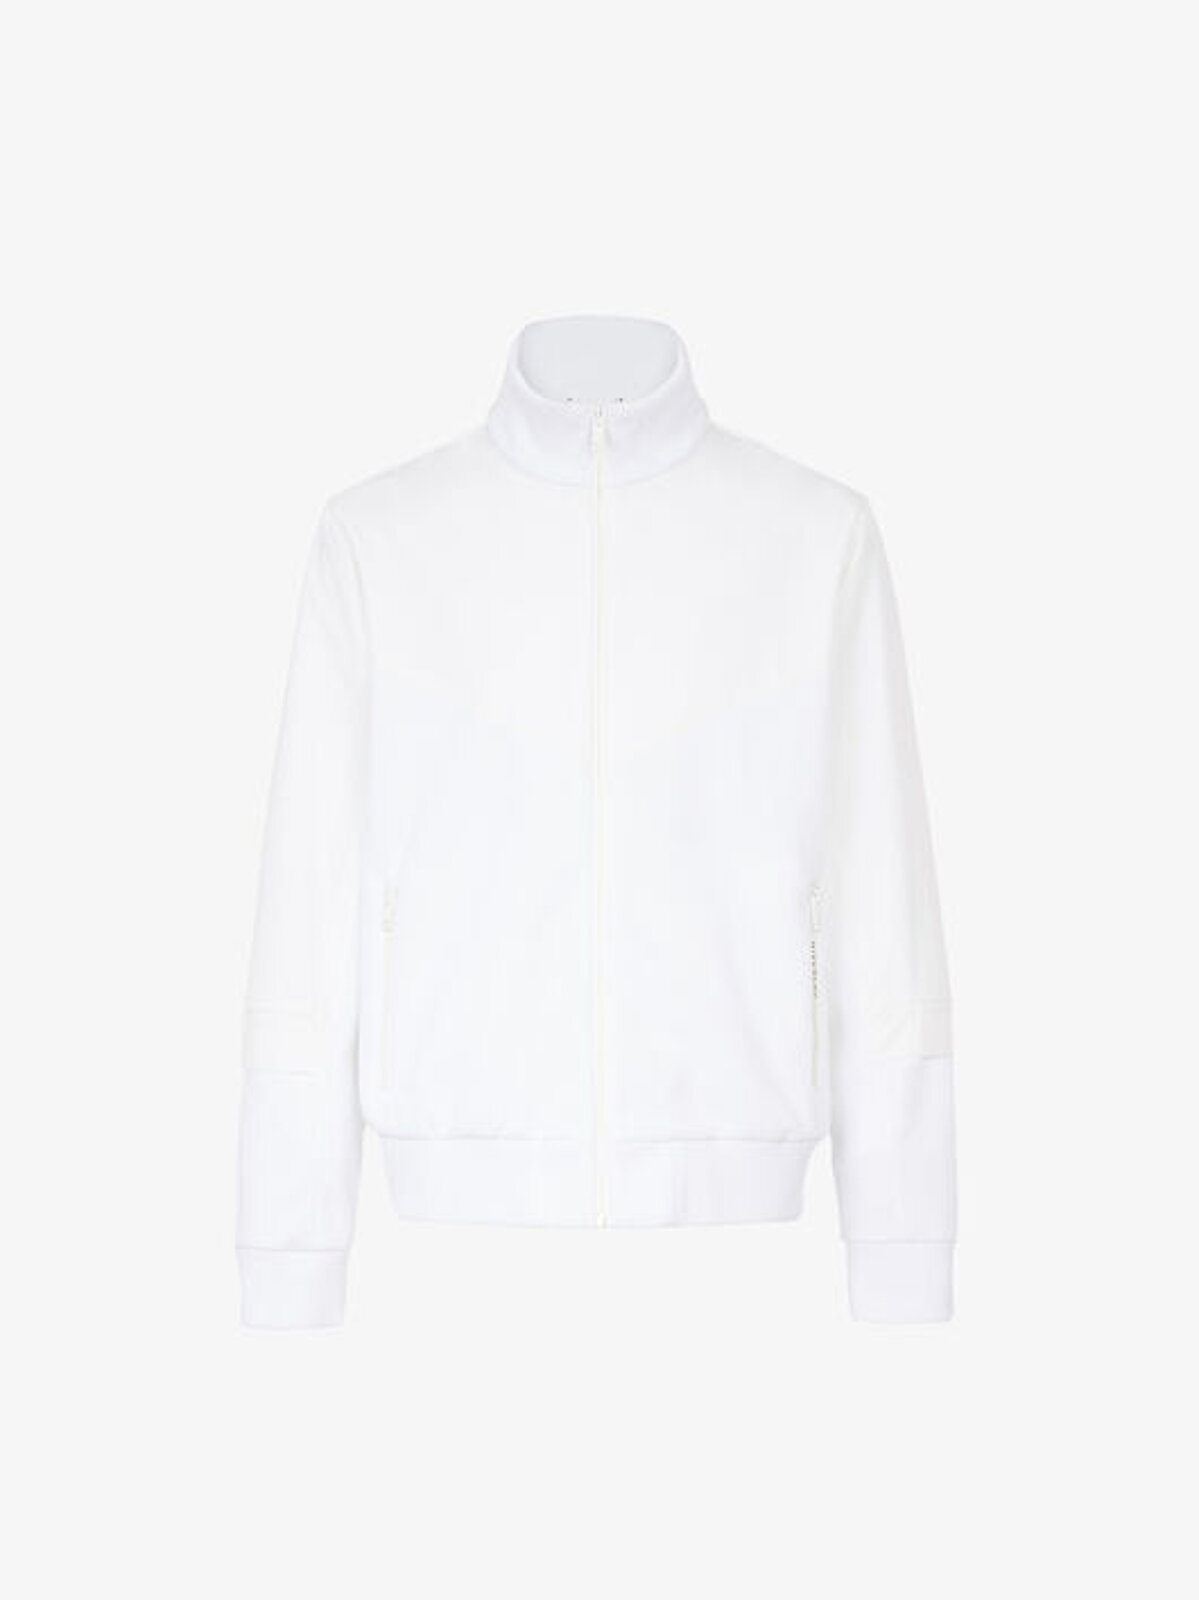 Giacca Sportiva Adresse Givenchy - Givenchy